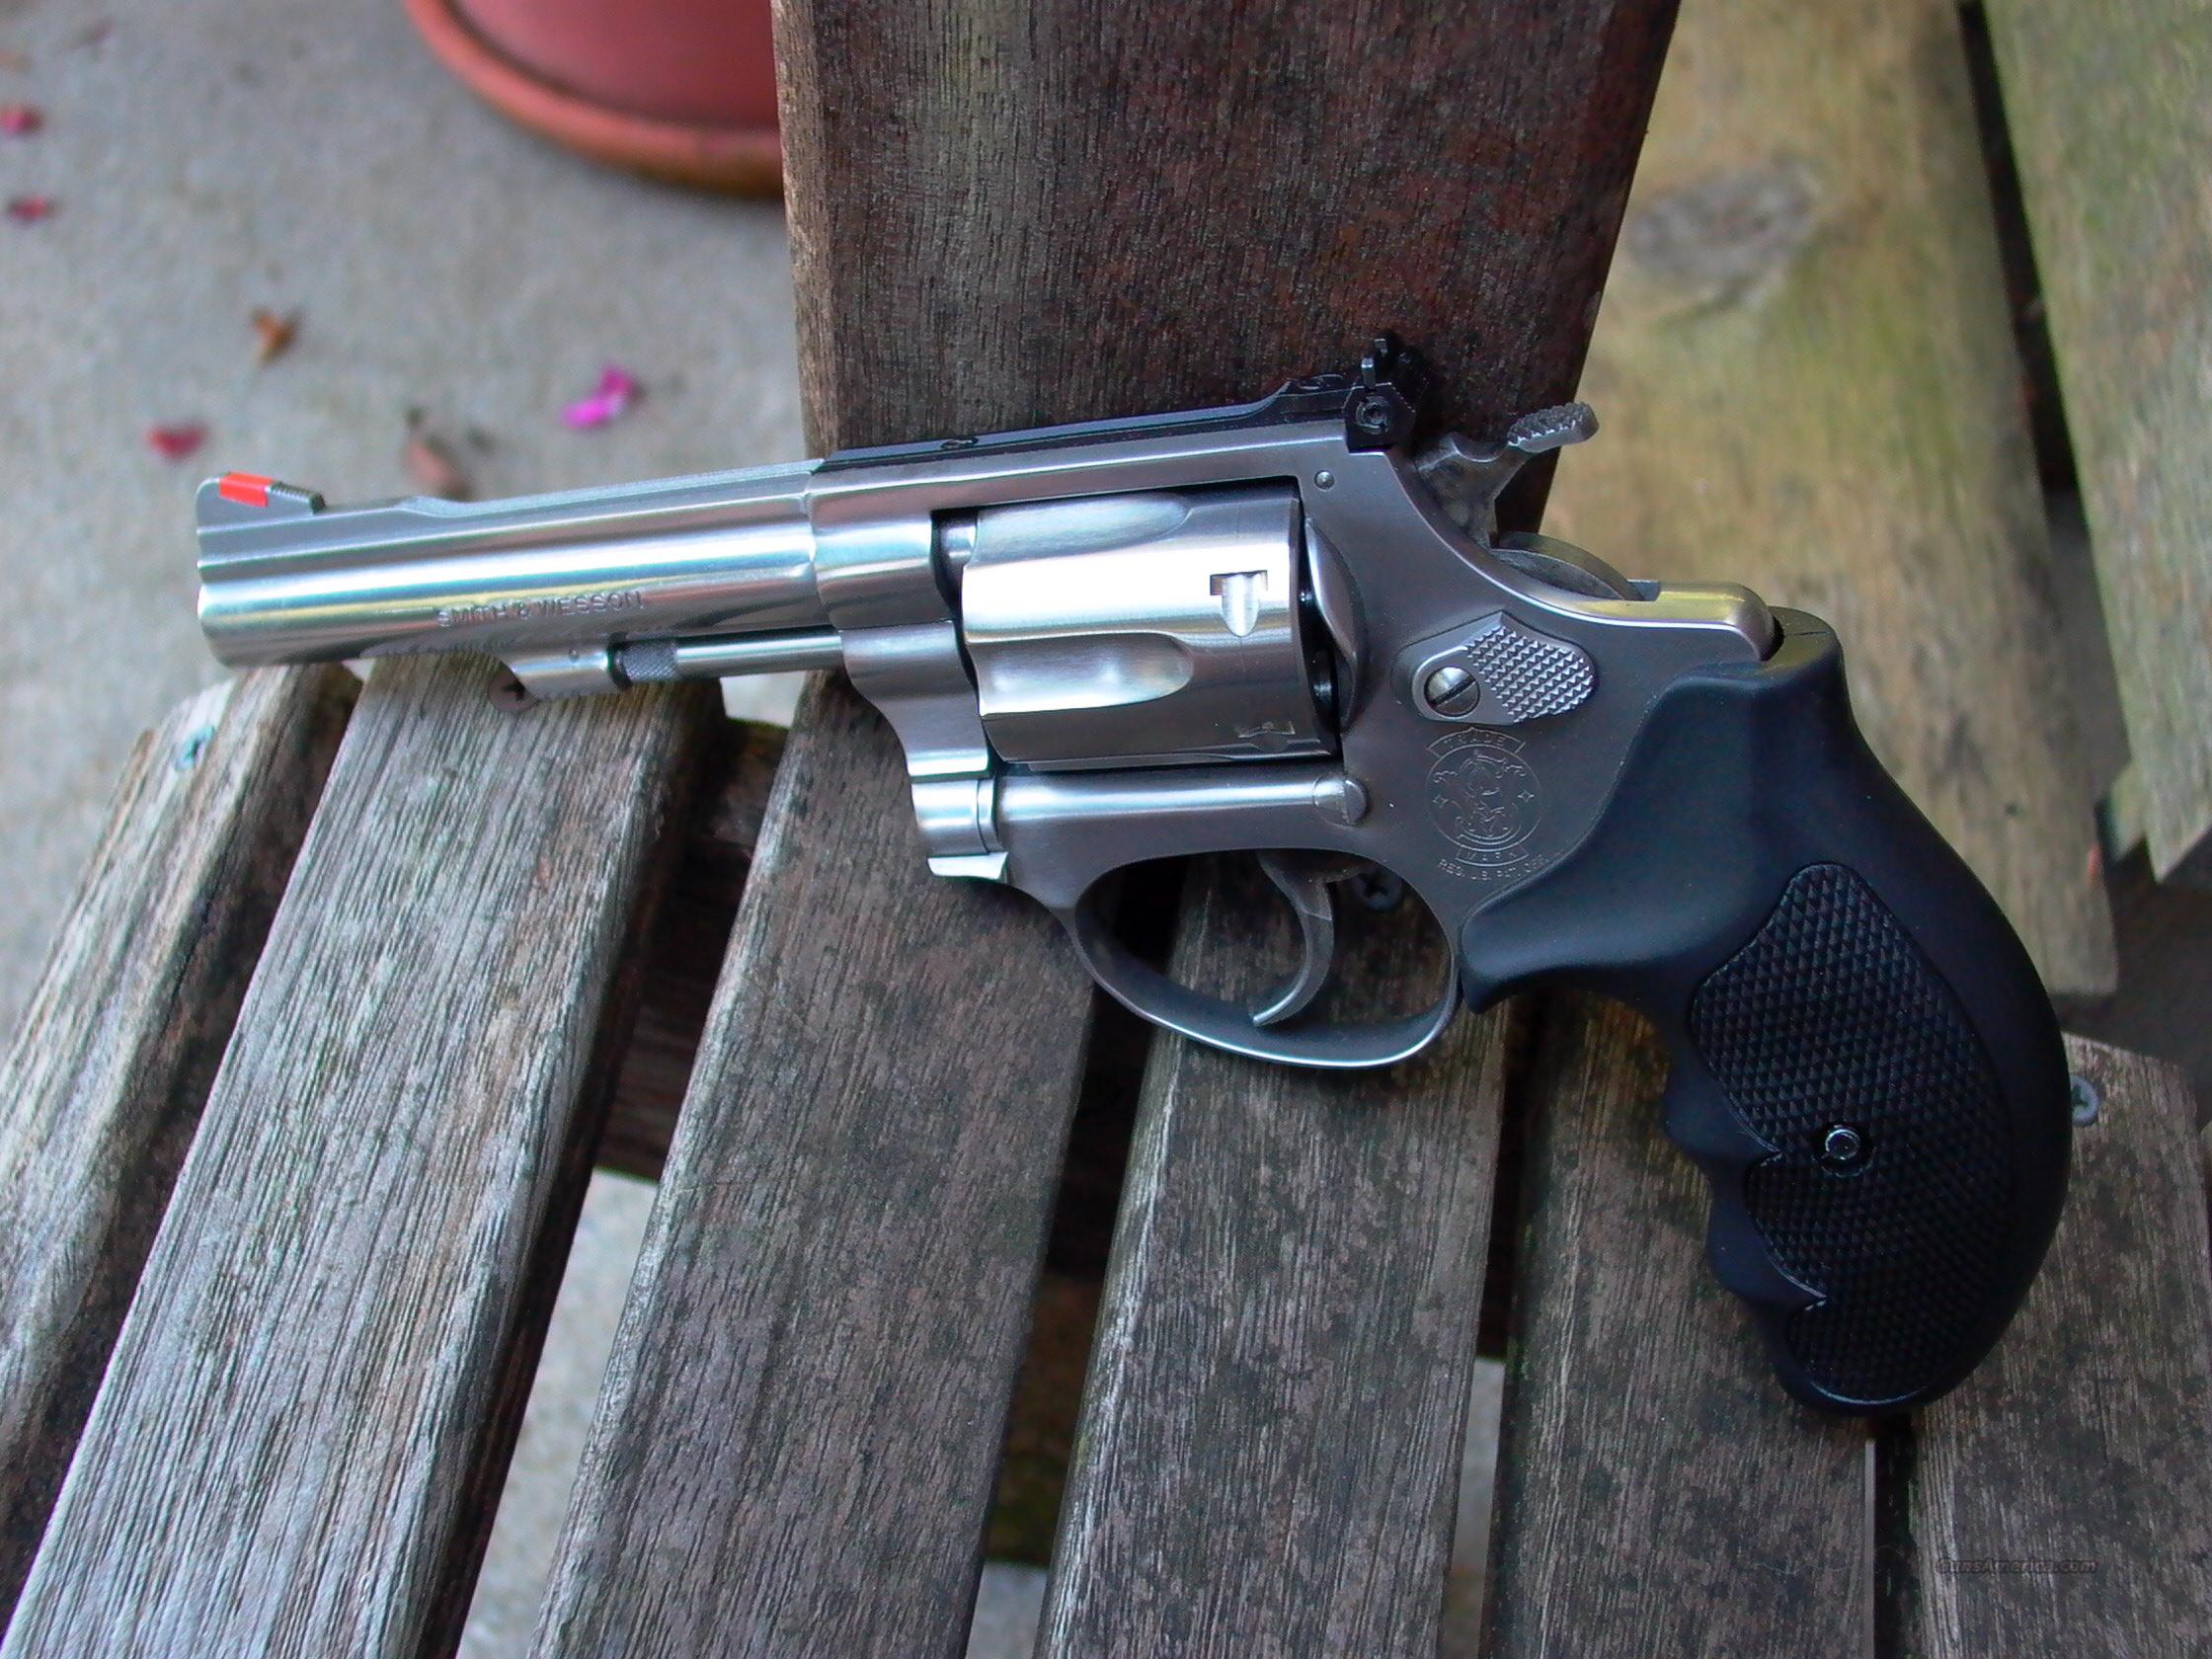 S&W 651  22 MAGNUM  Guns > Pistols > Smith & Wesson Revolvers > Pocket Pistols